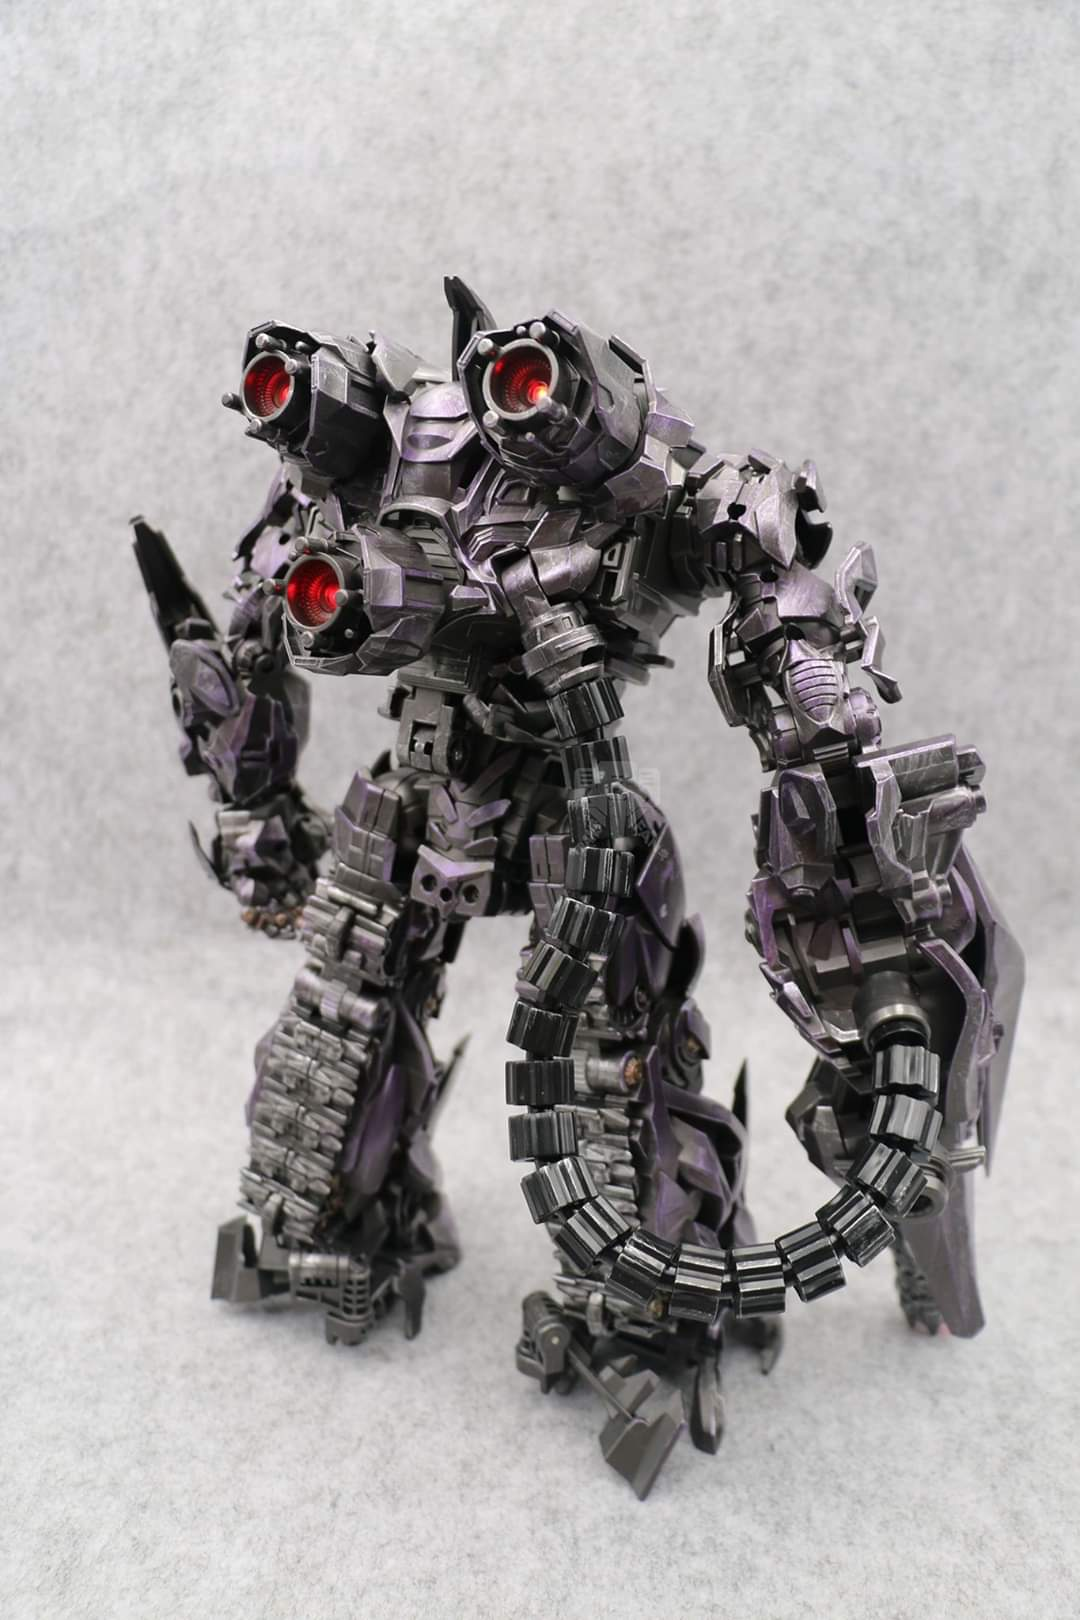 [Zeus Model] Produit Tiers - ZS-01 Guardian of the Universe - aka DOTM Shockwave UkqKcIzW_o